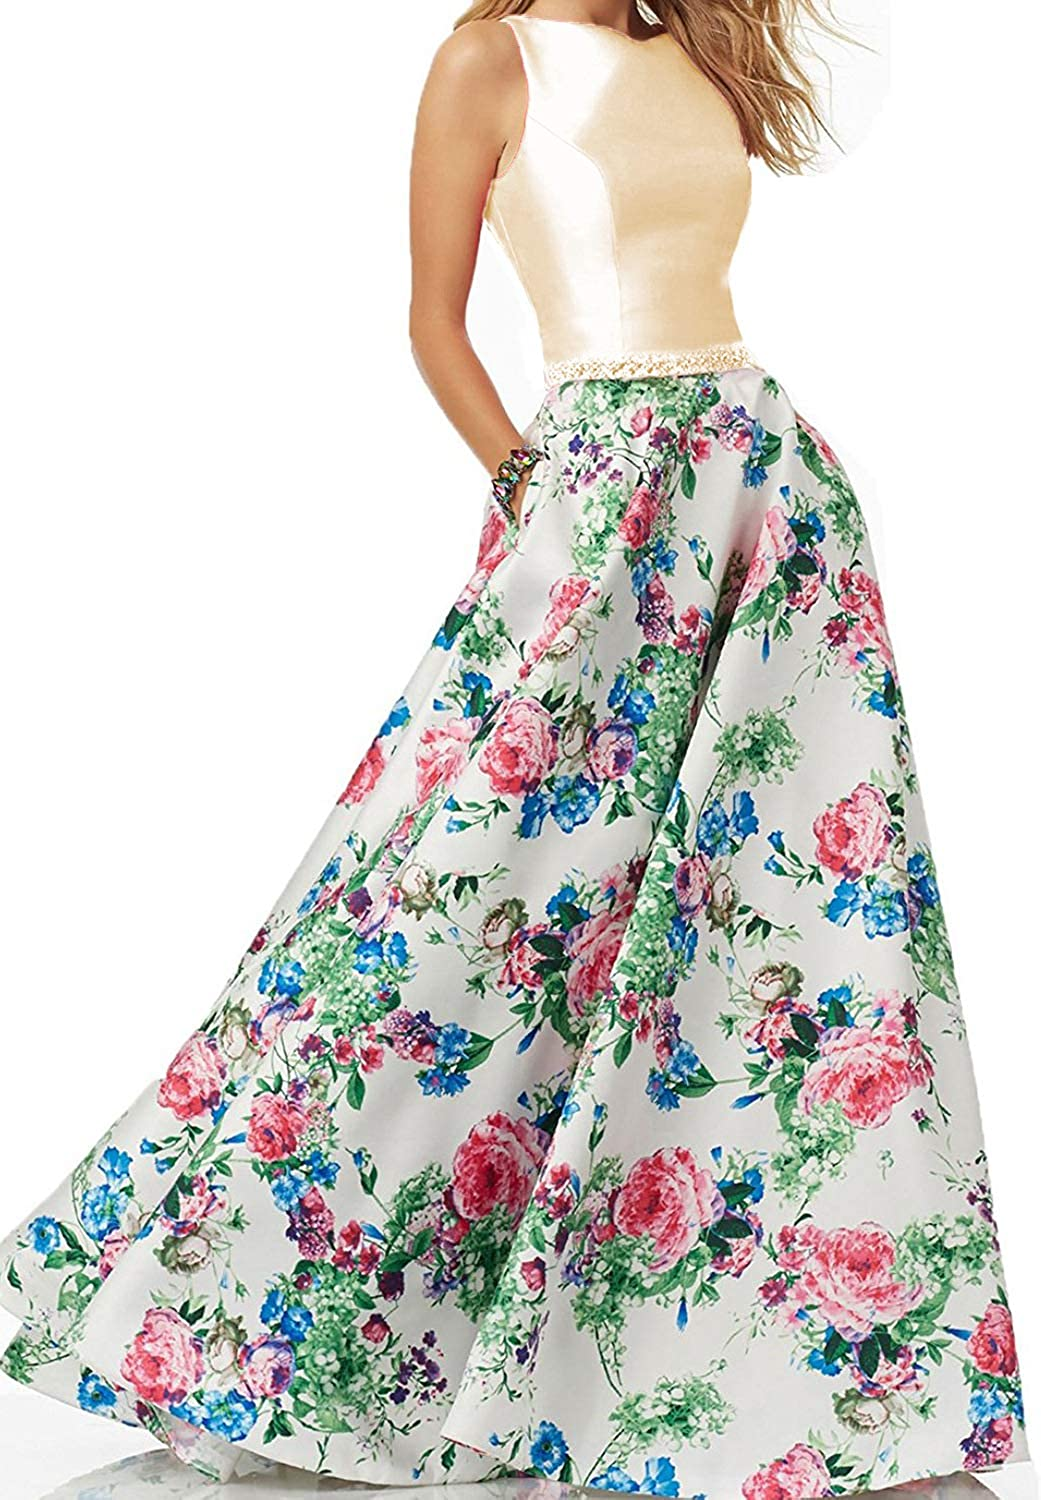 BessWedding Women's Two Pieces Floral Satin Prom Dresses Long 2018 Formal Evening Gowns BP025